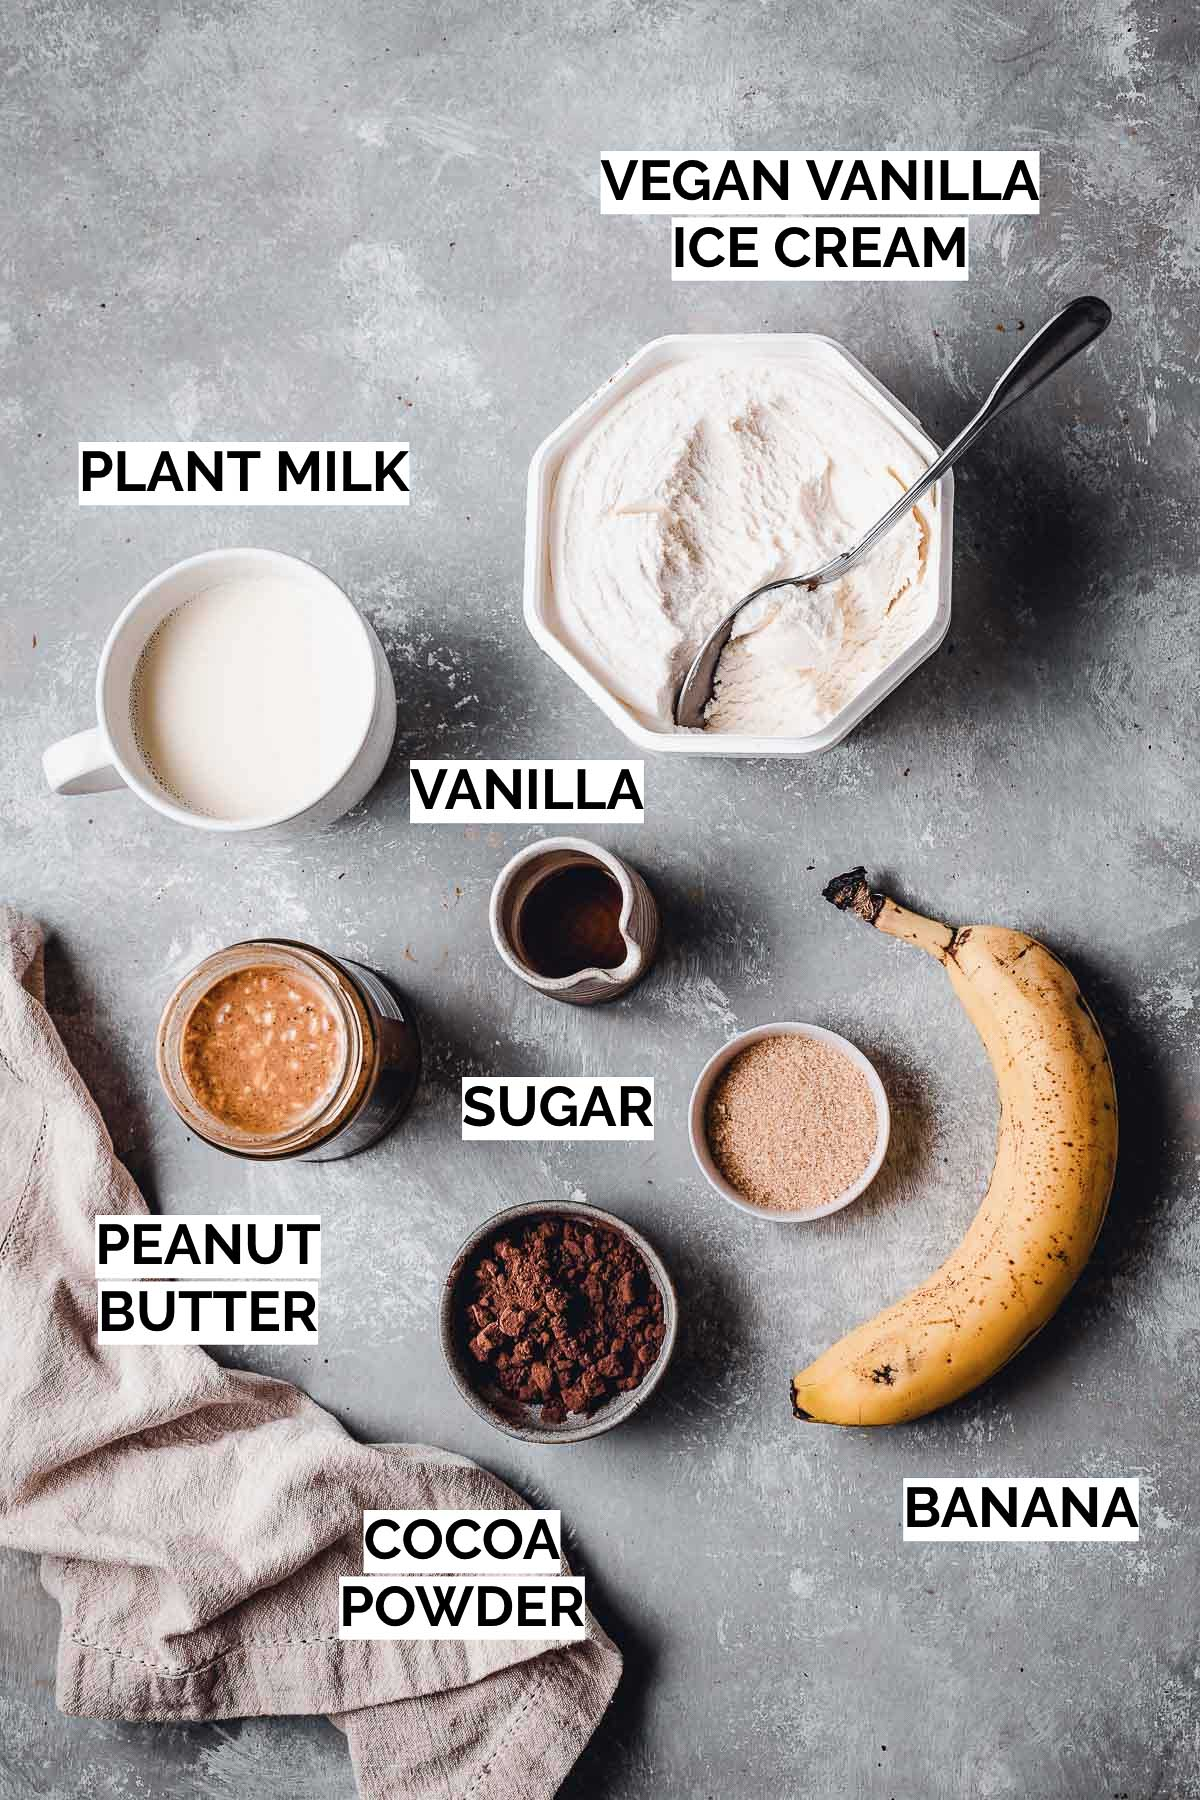 All ingredients needed to make a chocolate shake laid out on a flat surface.